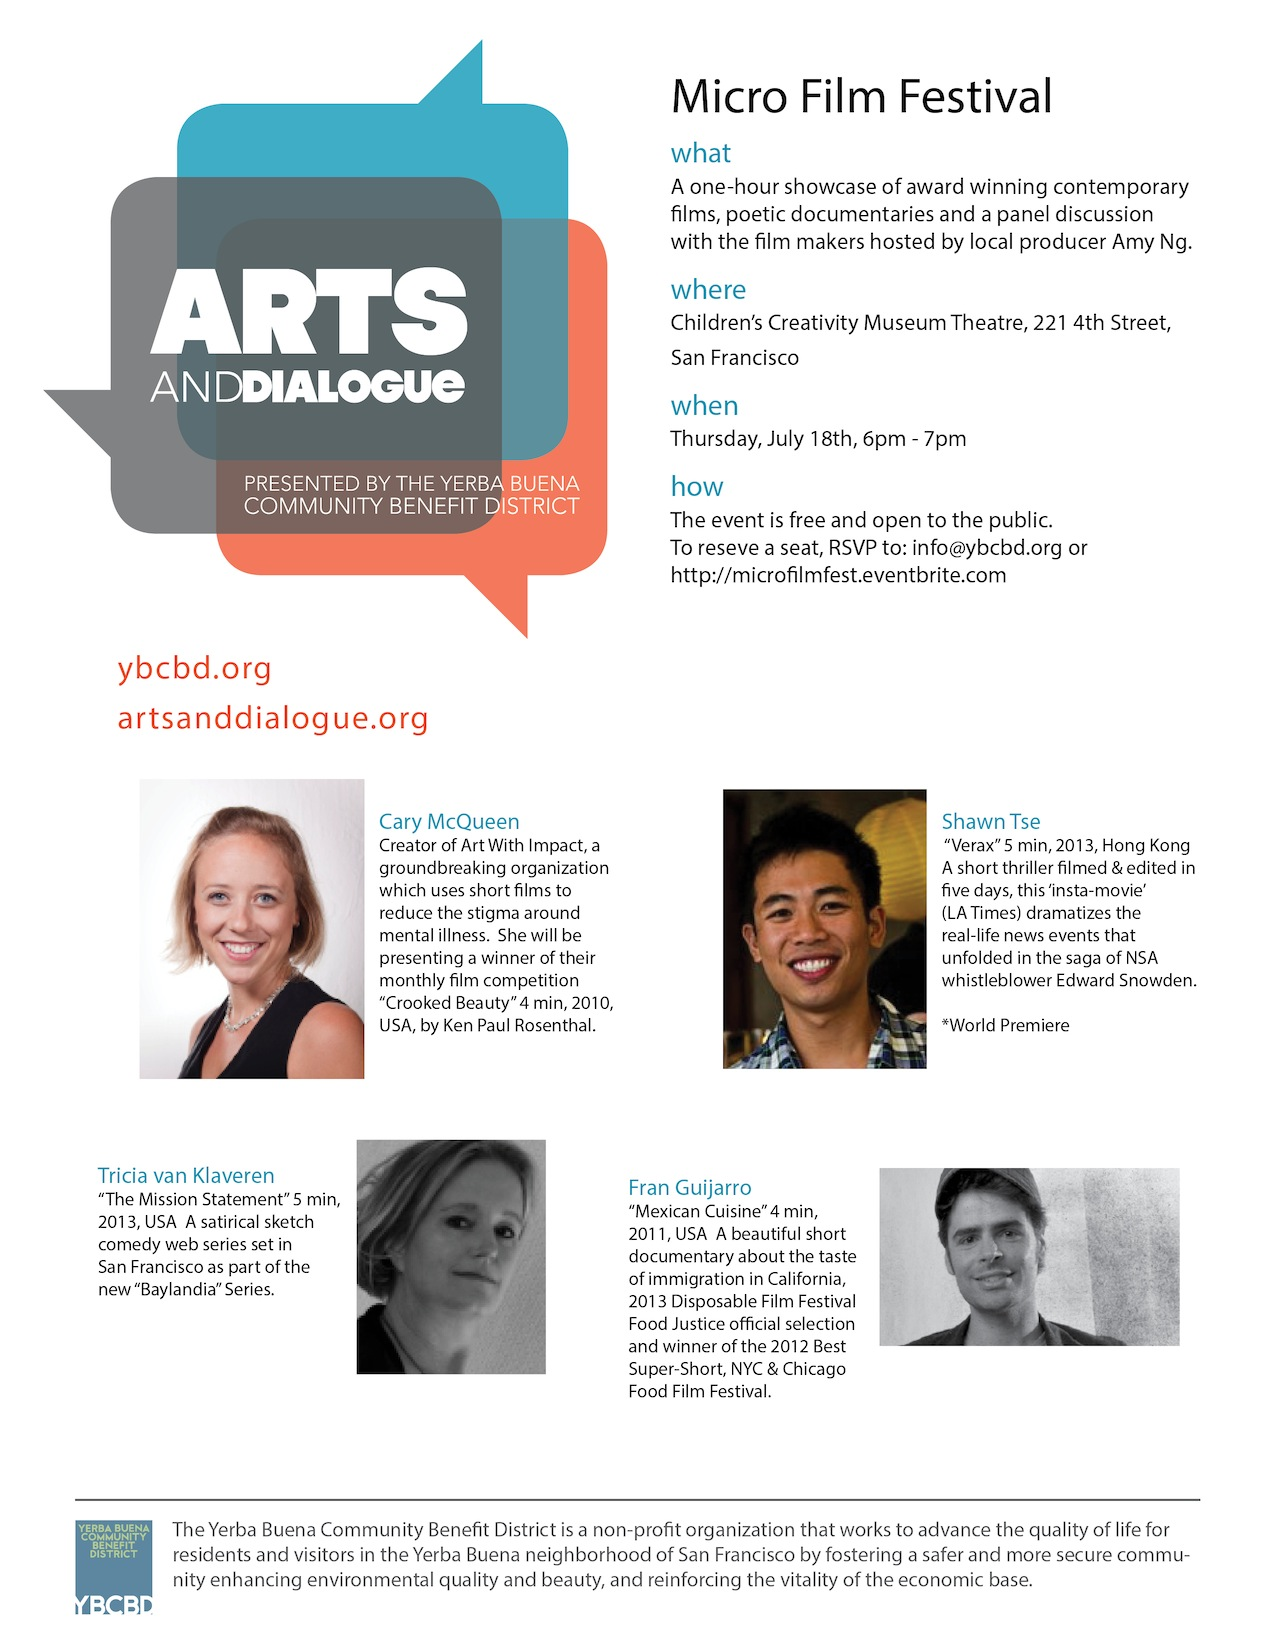 Micro Film Festival July Arts in Dialogue Poster